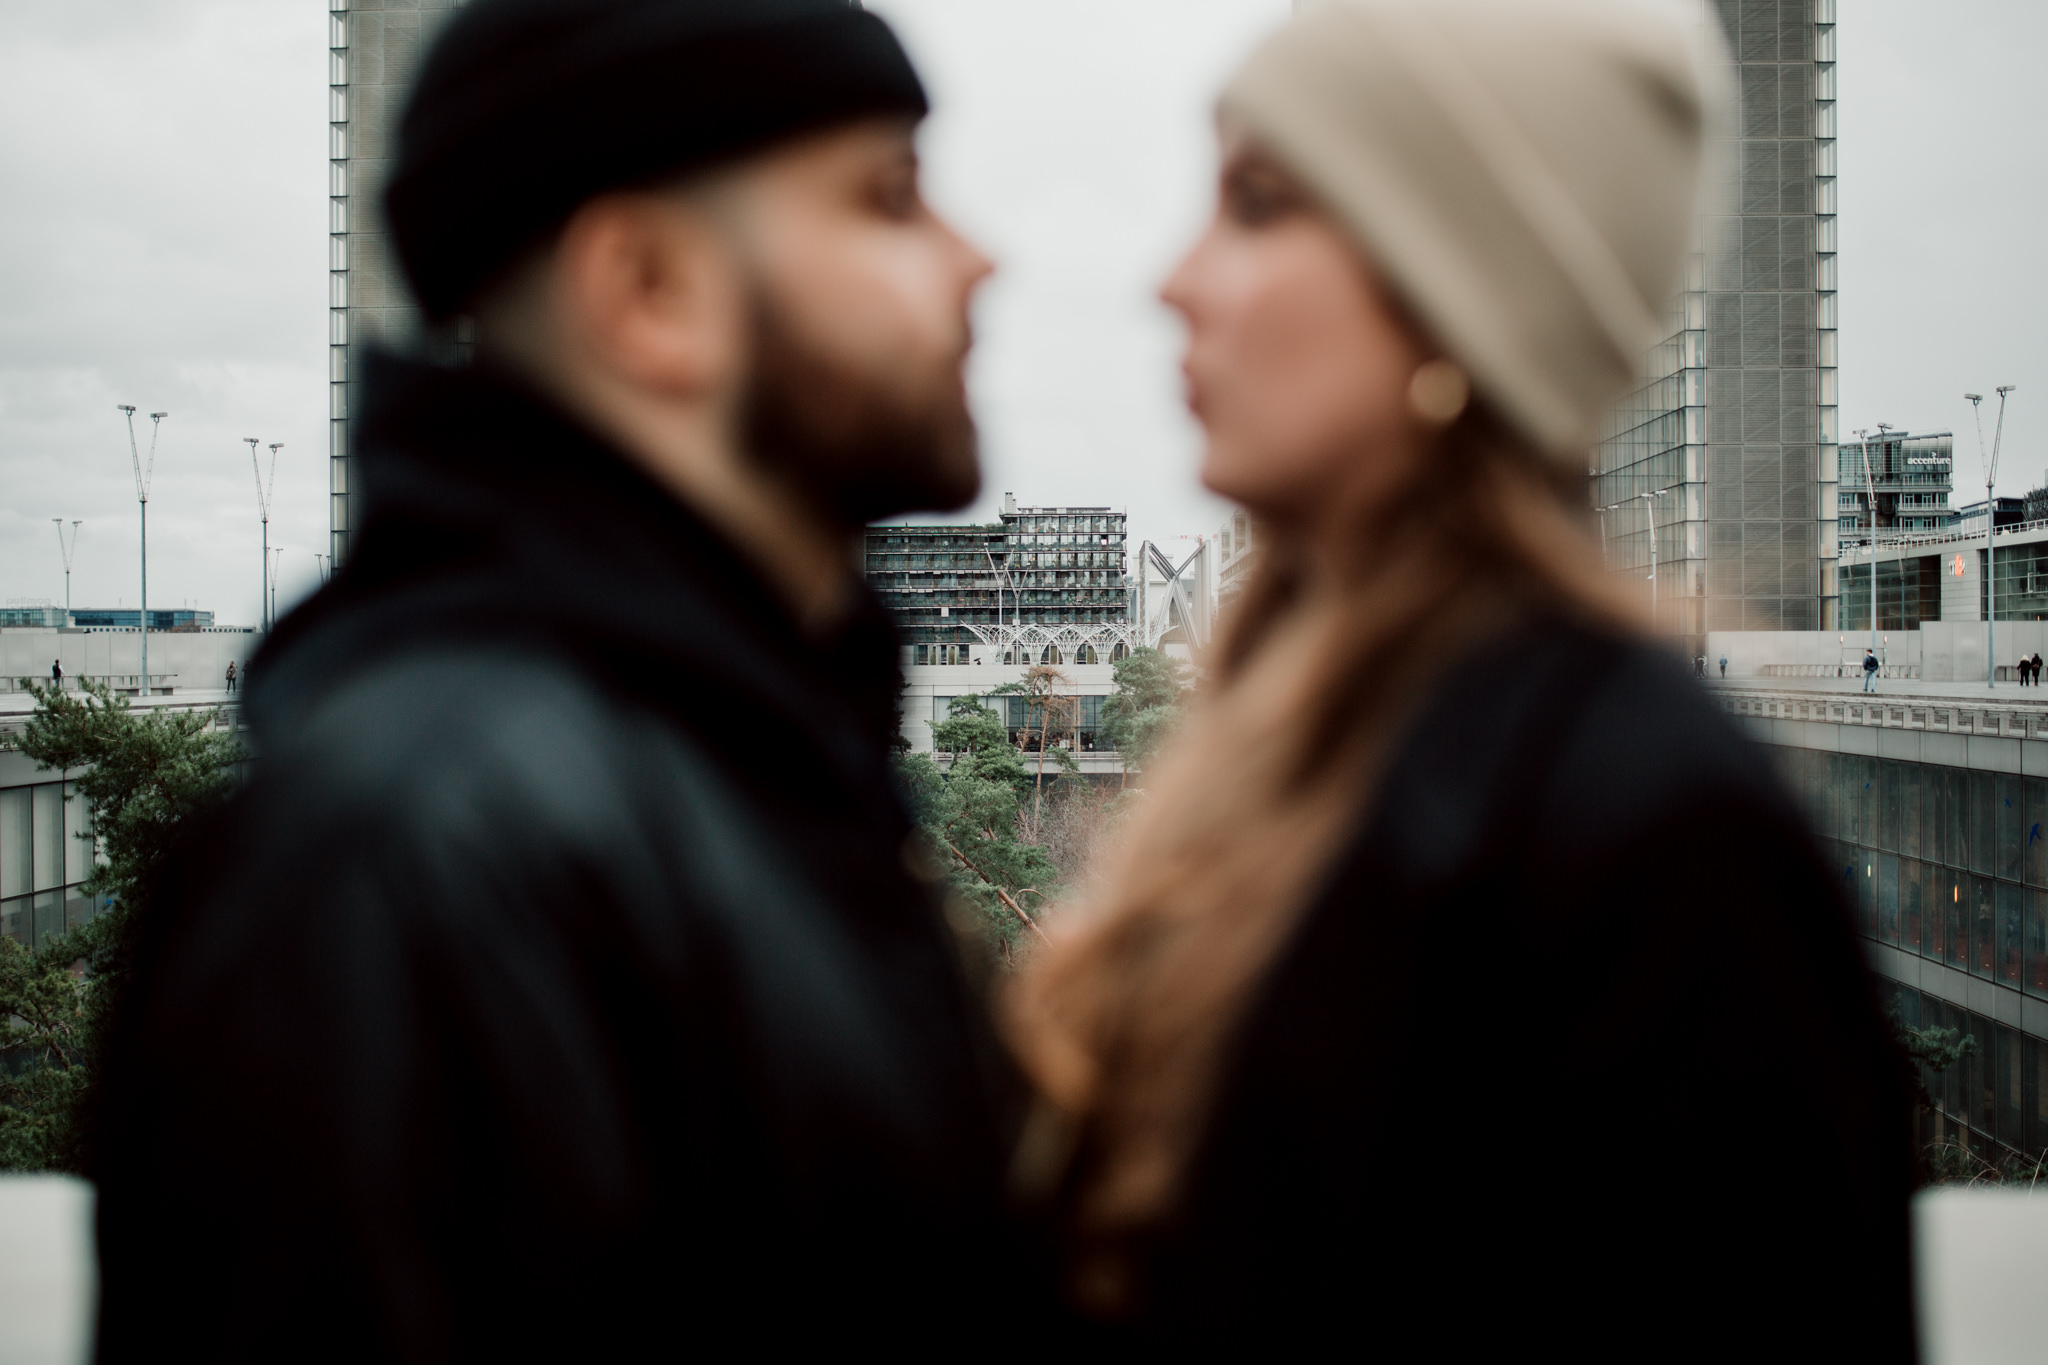 Couple durant une séance photo urbaine à Paris